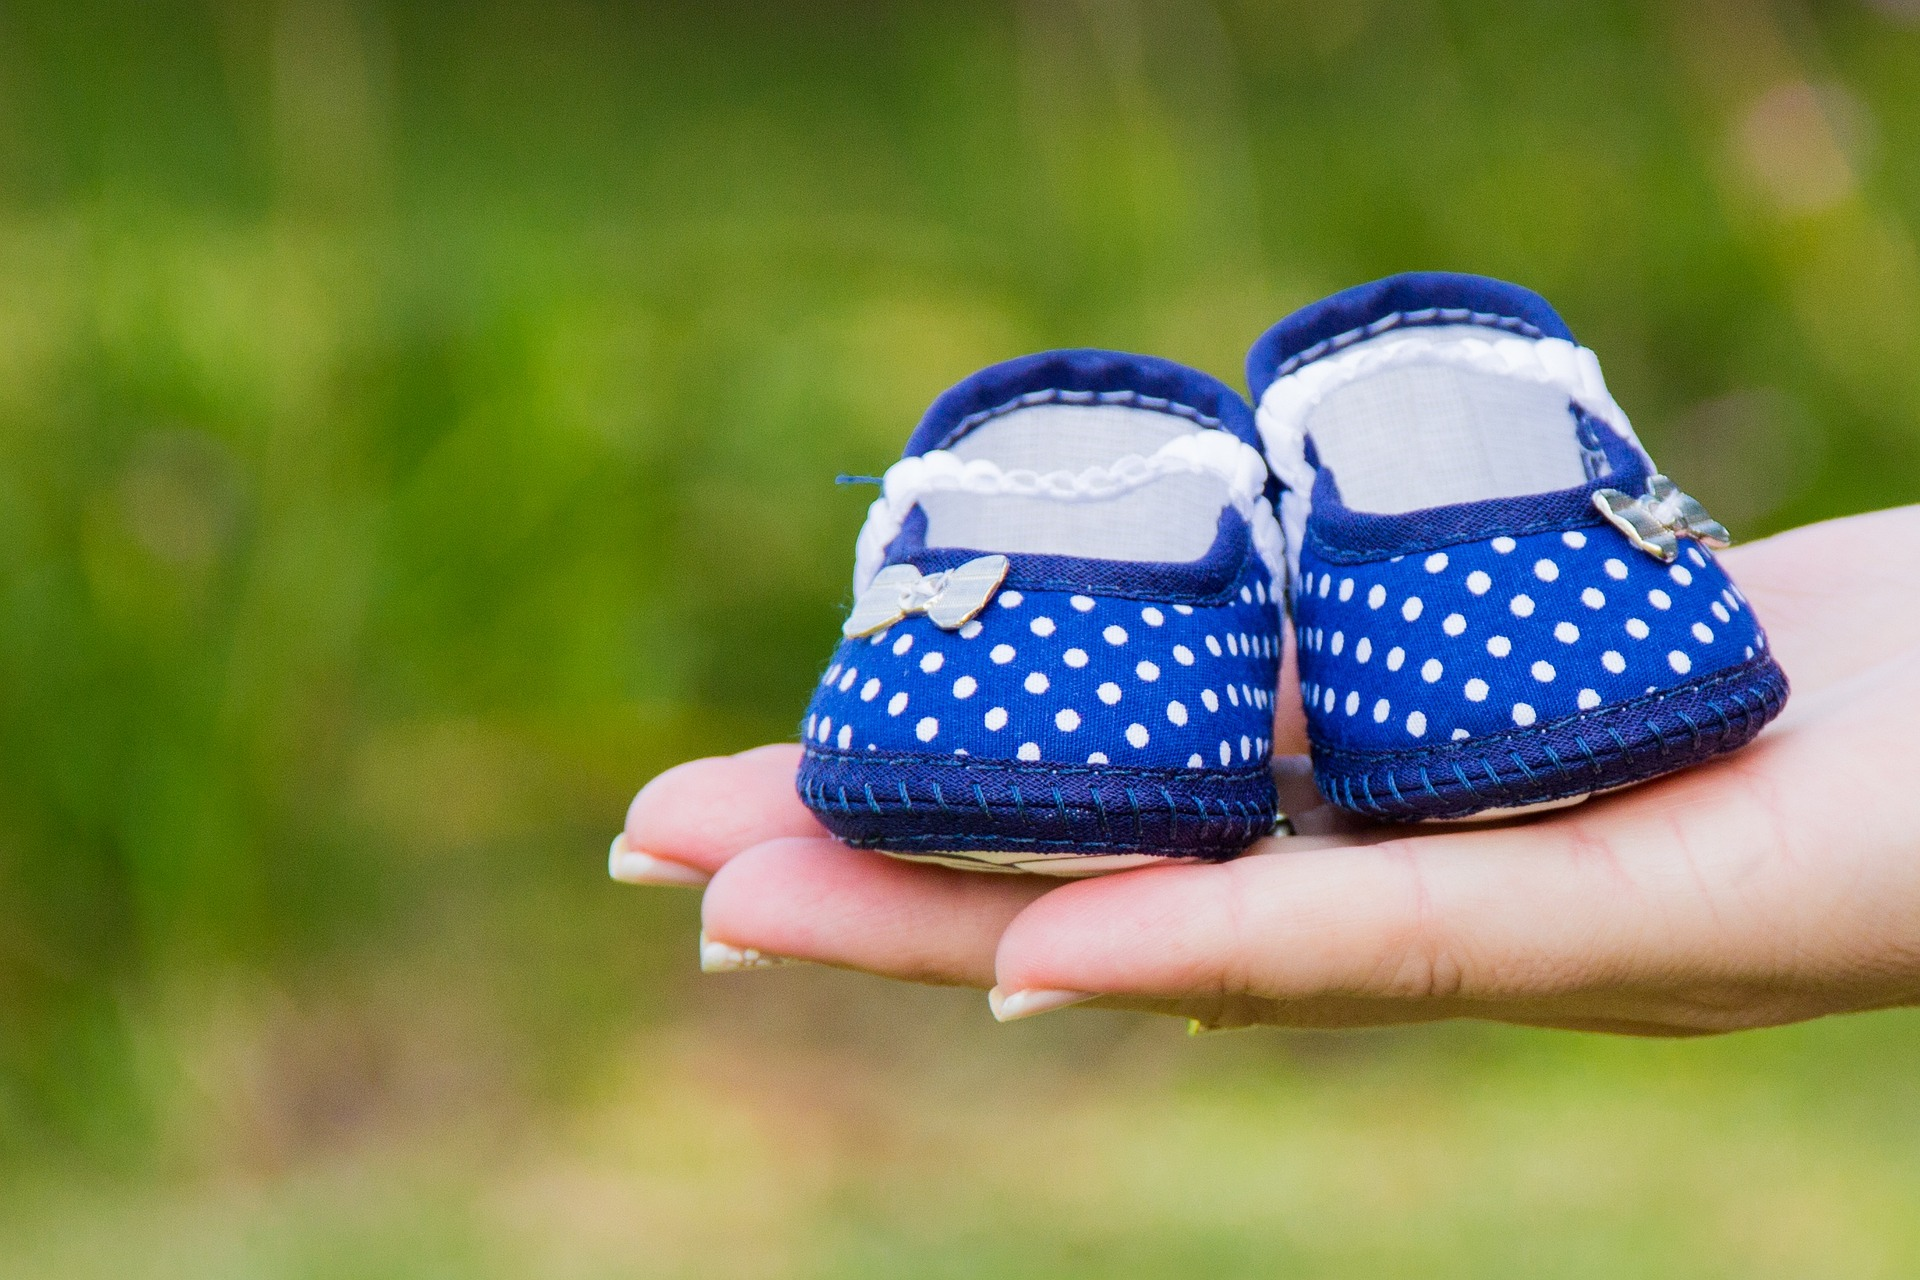 Blue baby shoes. Tips for morning sickness from eatrightmama.com and Bridget Swinney.